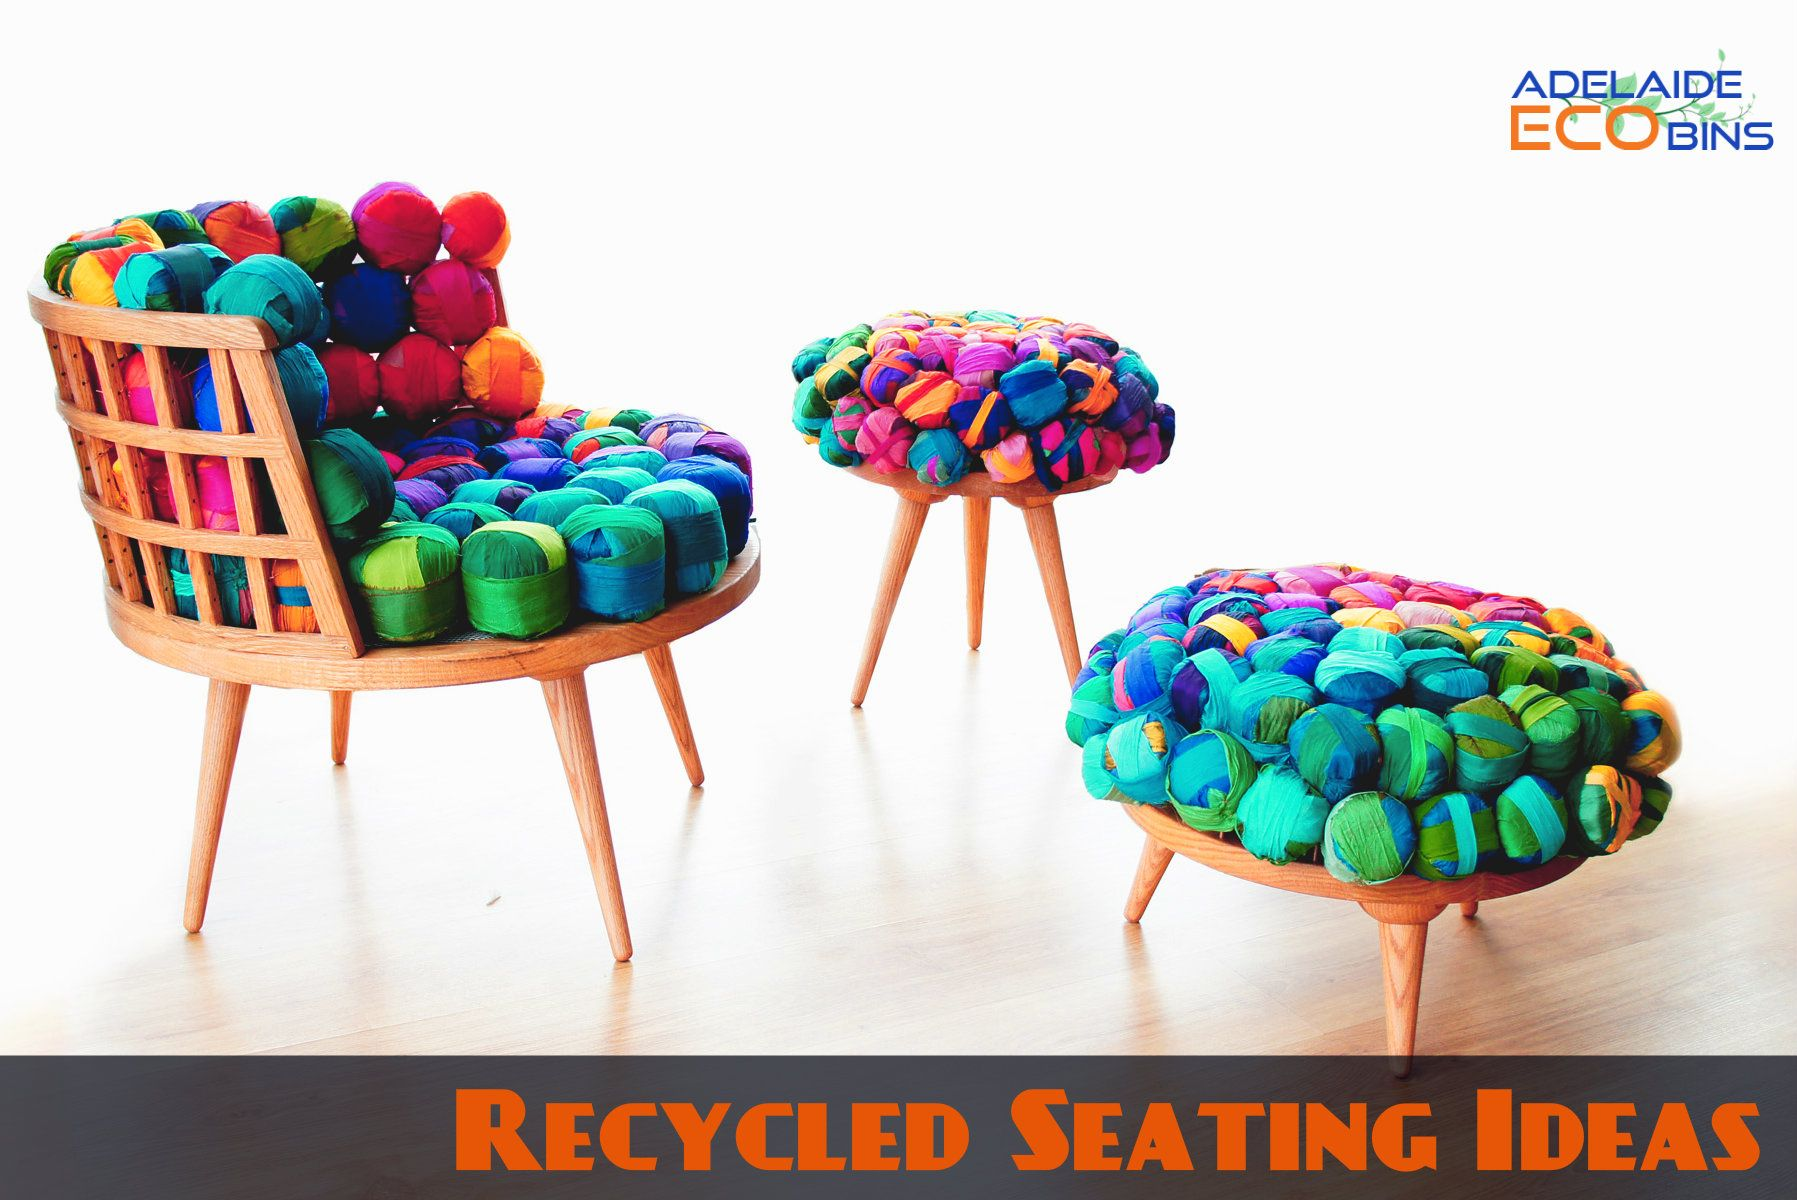 Find verified bamboo sofa sets suppliers in india; Bamboo Chair Price In Nepal - Idalias Salon